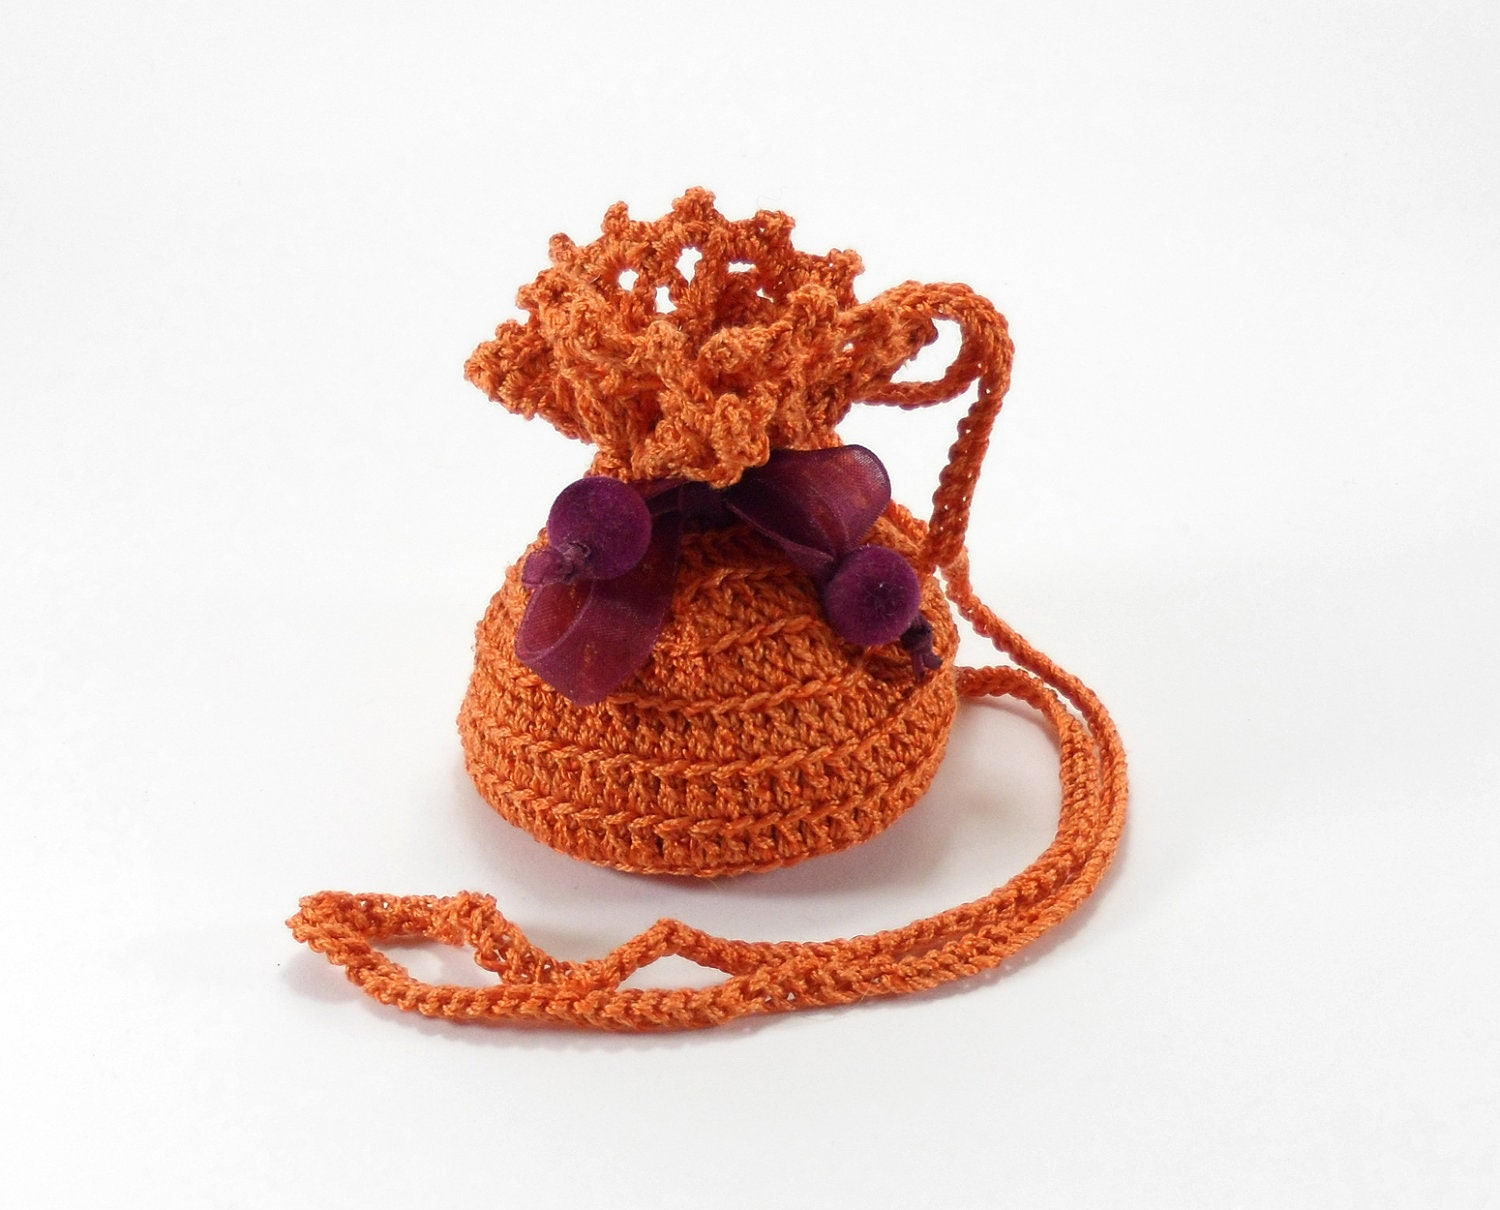 Crochet Small Bag : Crochet Small Pouch Jewelry Bag with Drawstring Orange by Smalkumi